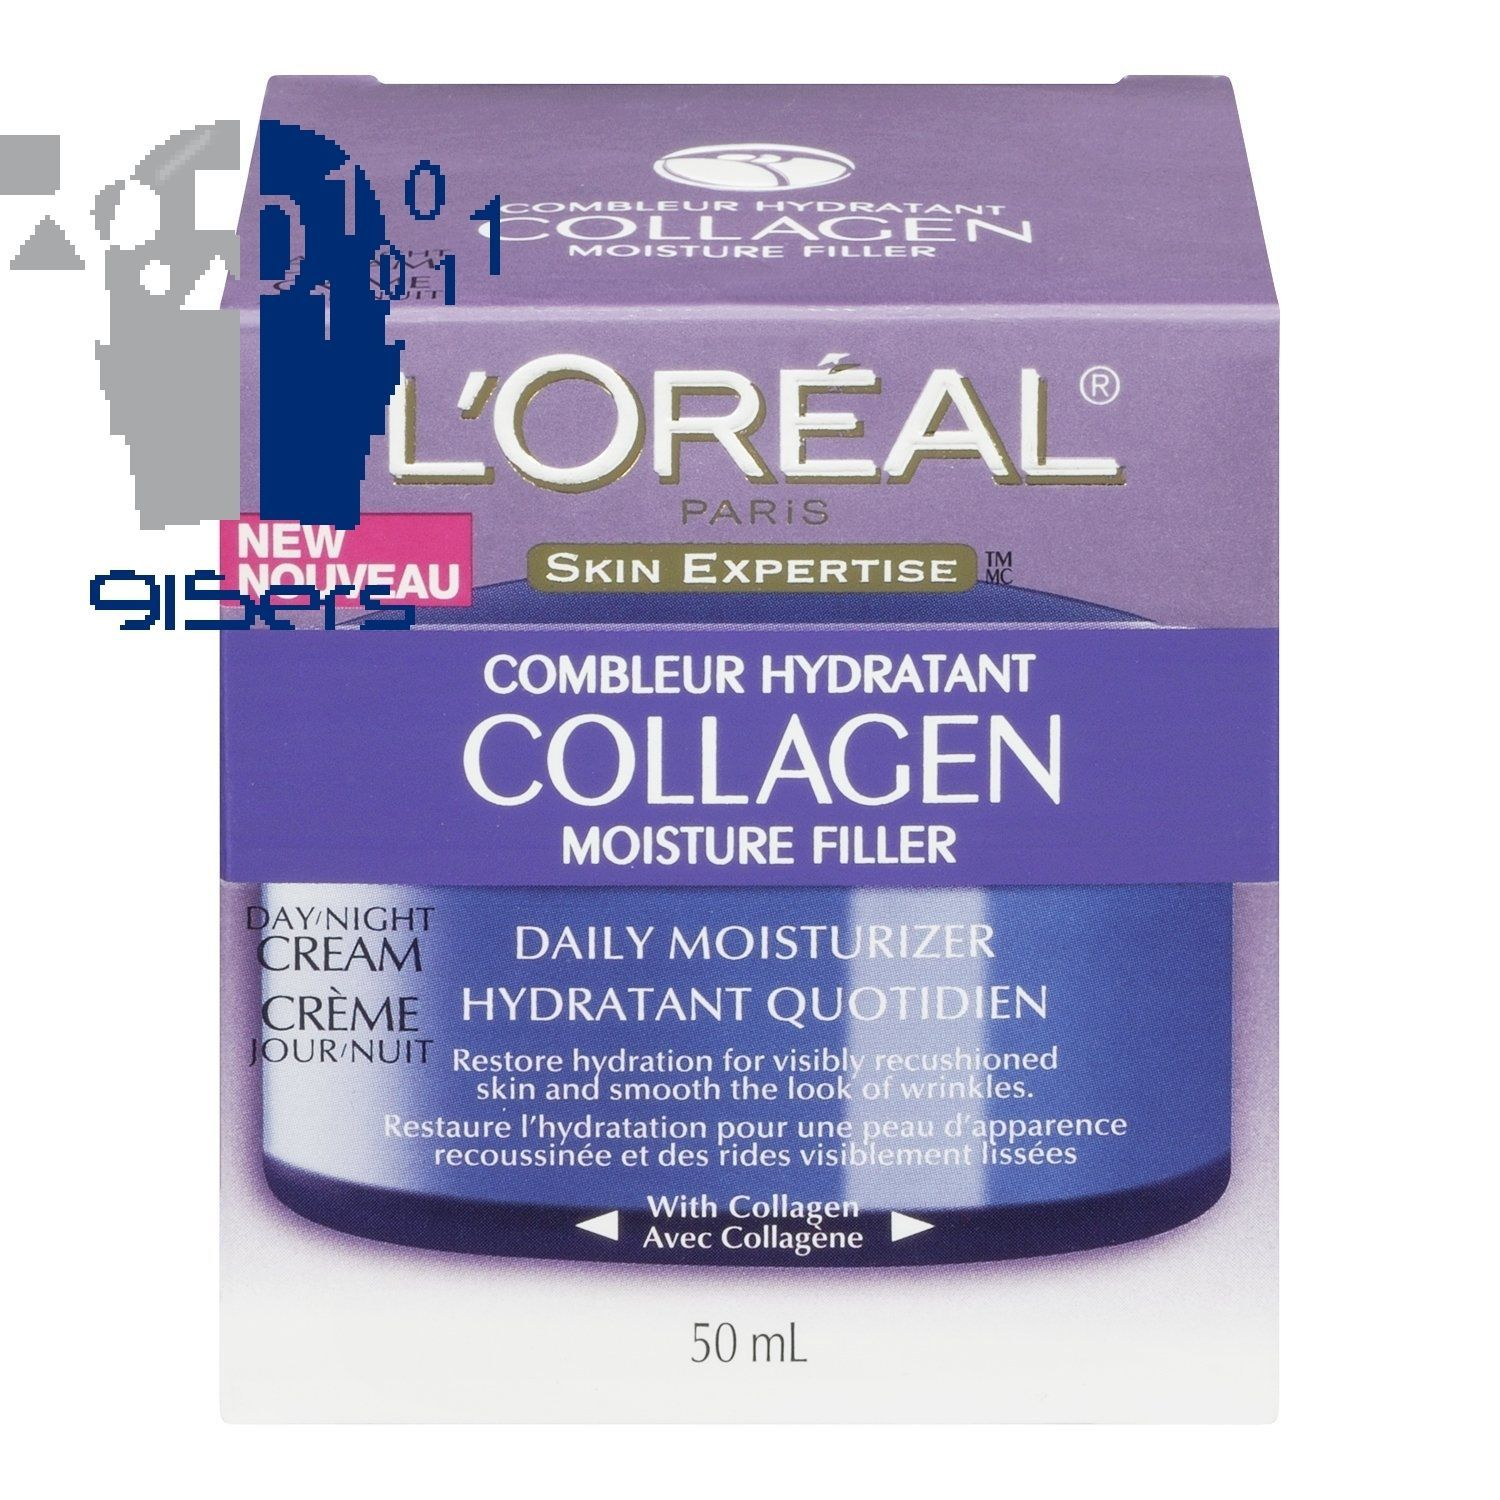 L'Oreal Paris Collagen Moisture Filler Facial Day/Night Cream All Skin Types New